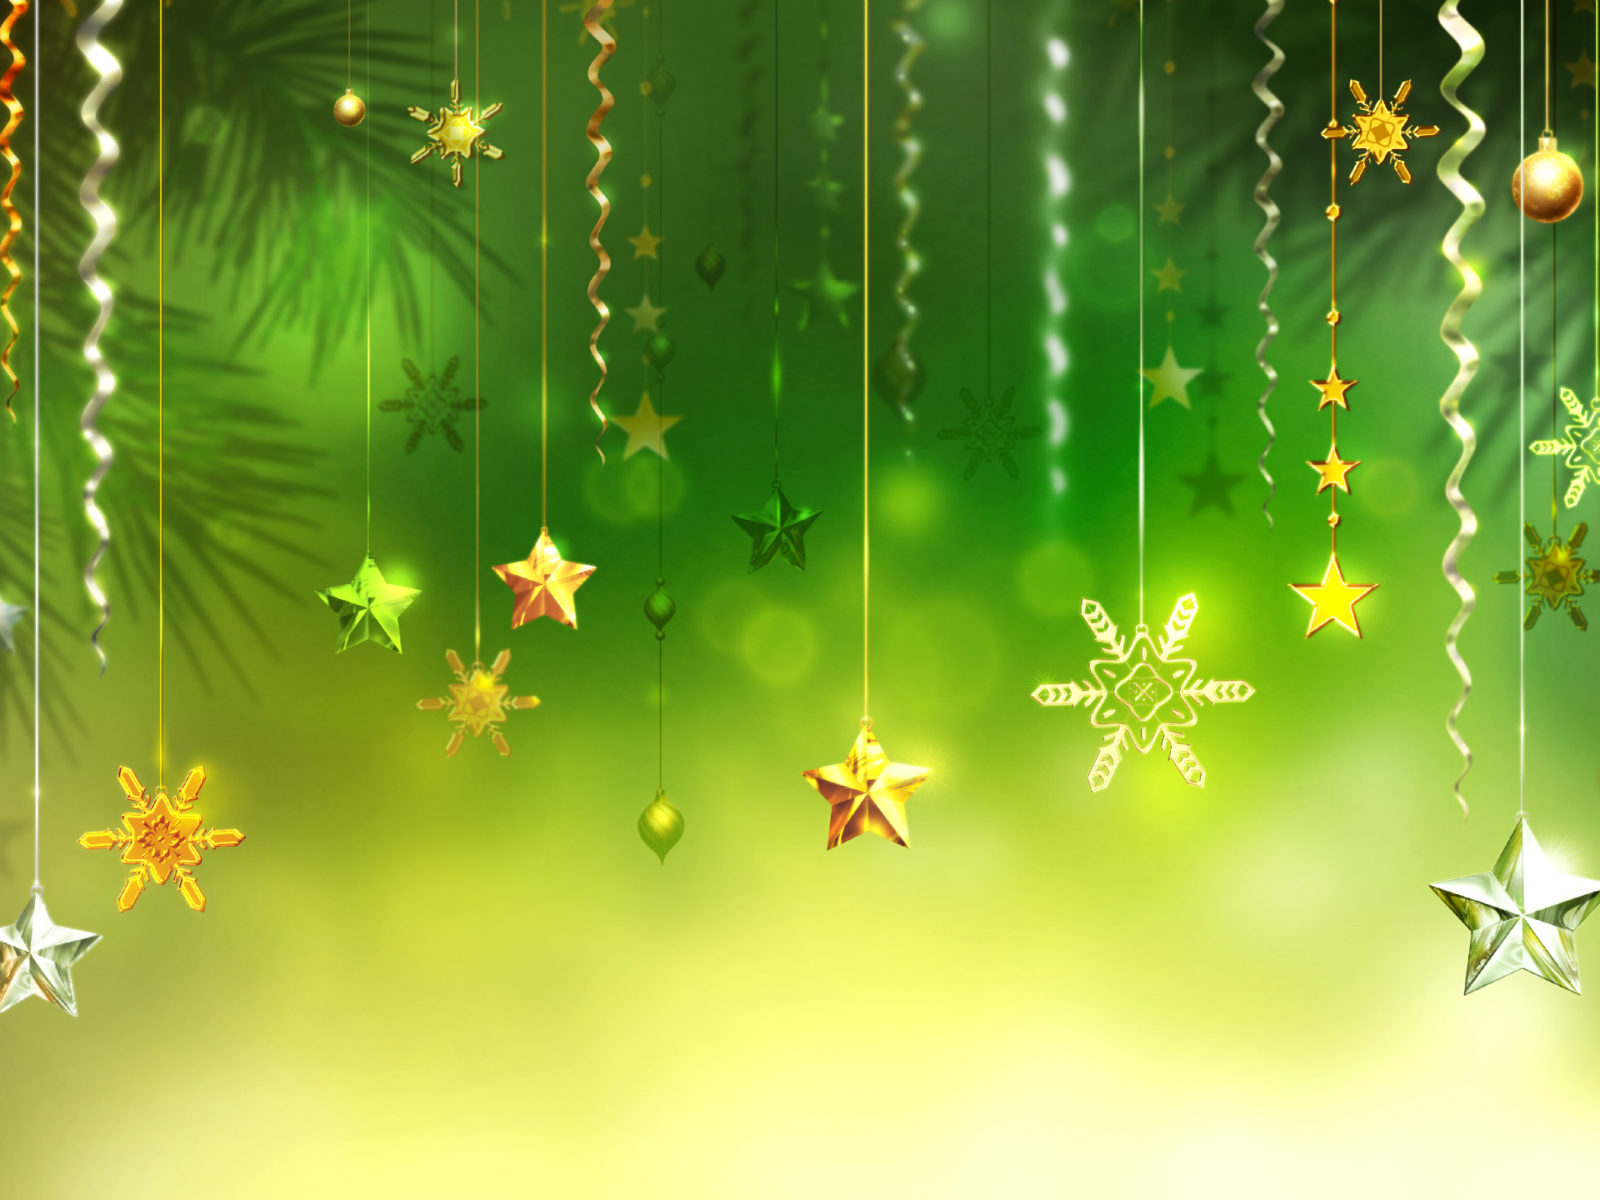 New Year Wishes Wallpapers With Quotes Christmas Green Background Stars Snowflakes Decorative